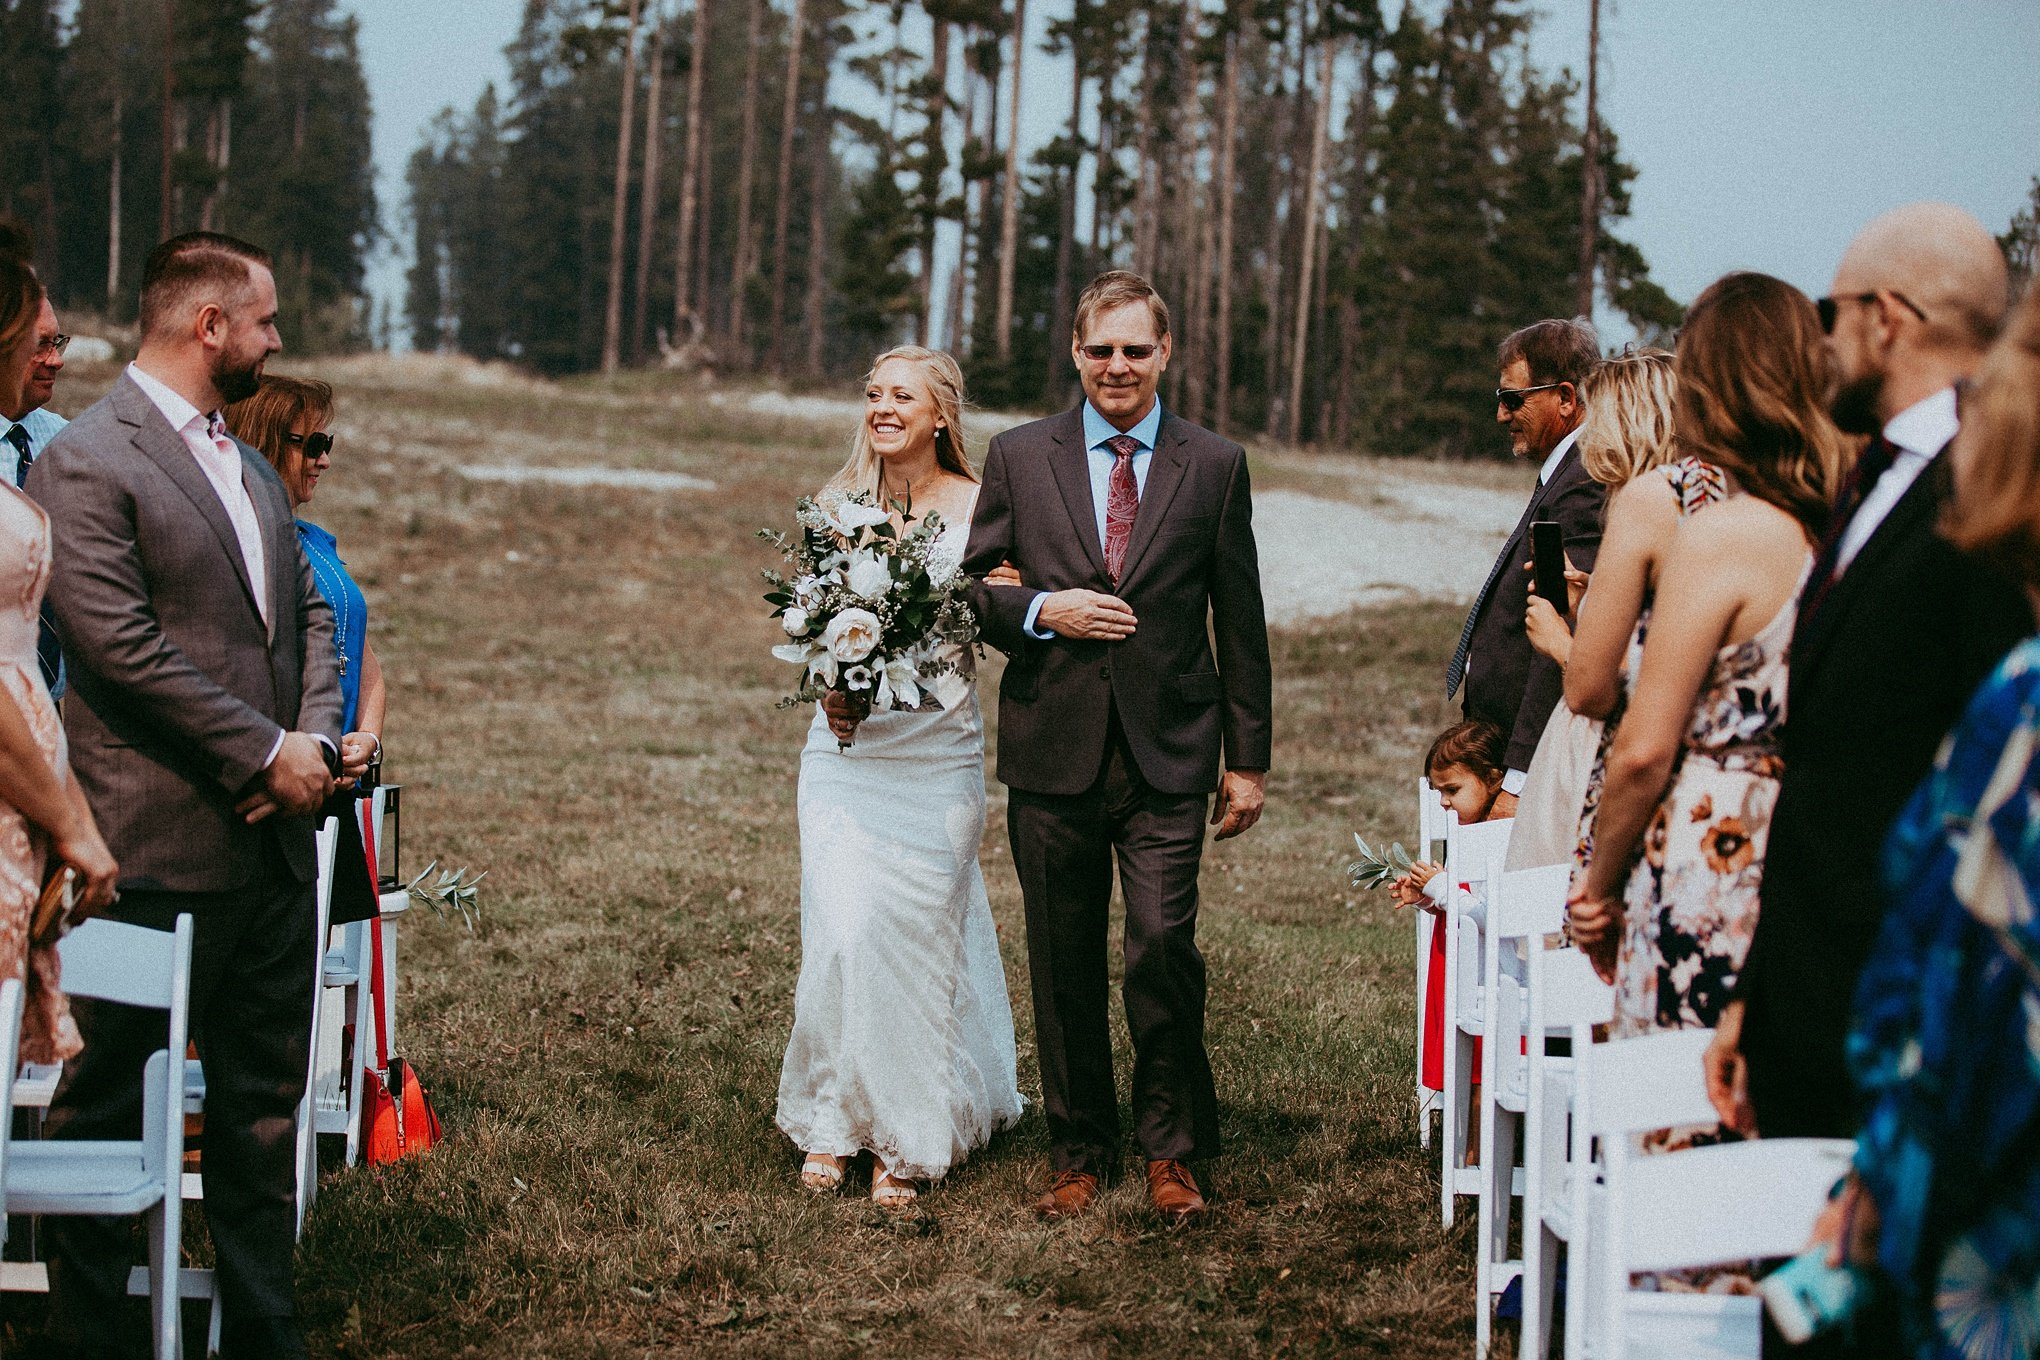 canmore nordic centre, nordic centre, nordic centre wedding, canmore photographers, camore wedding photographers